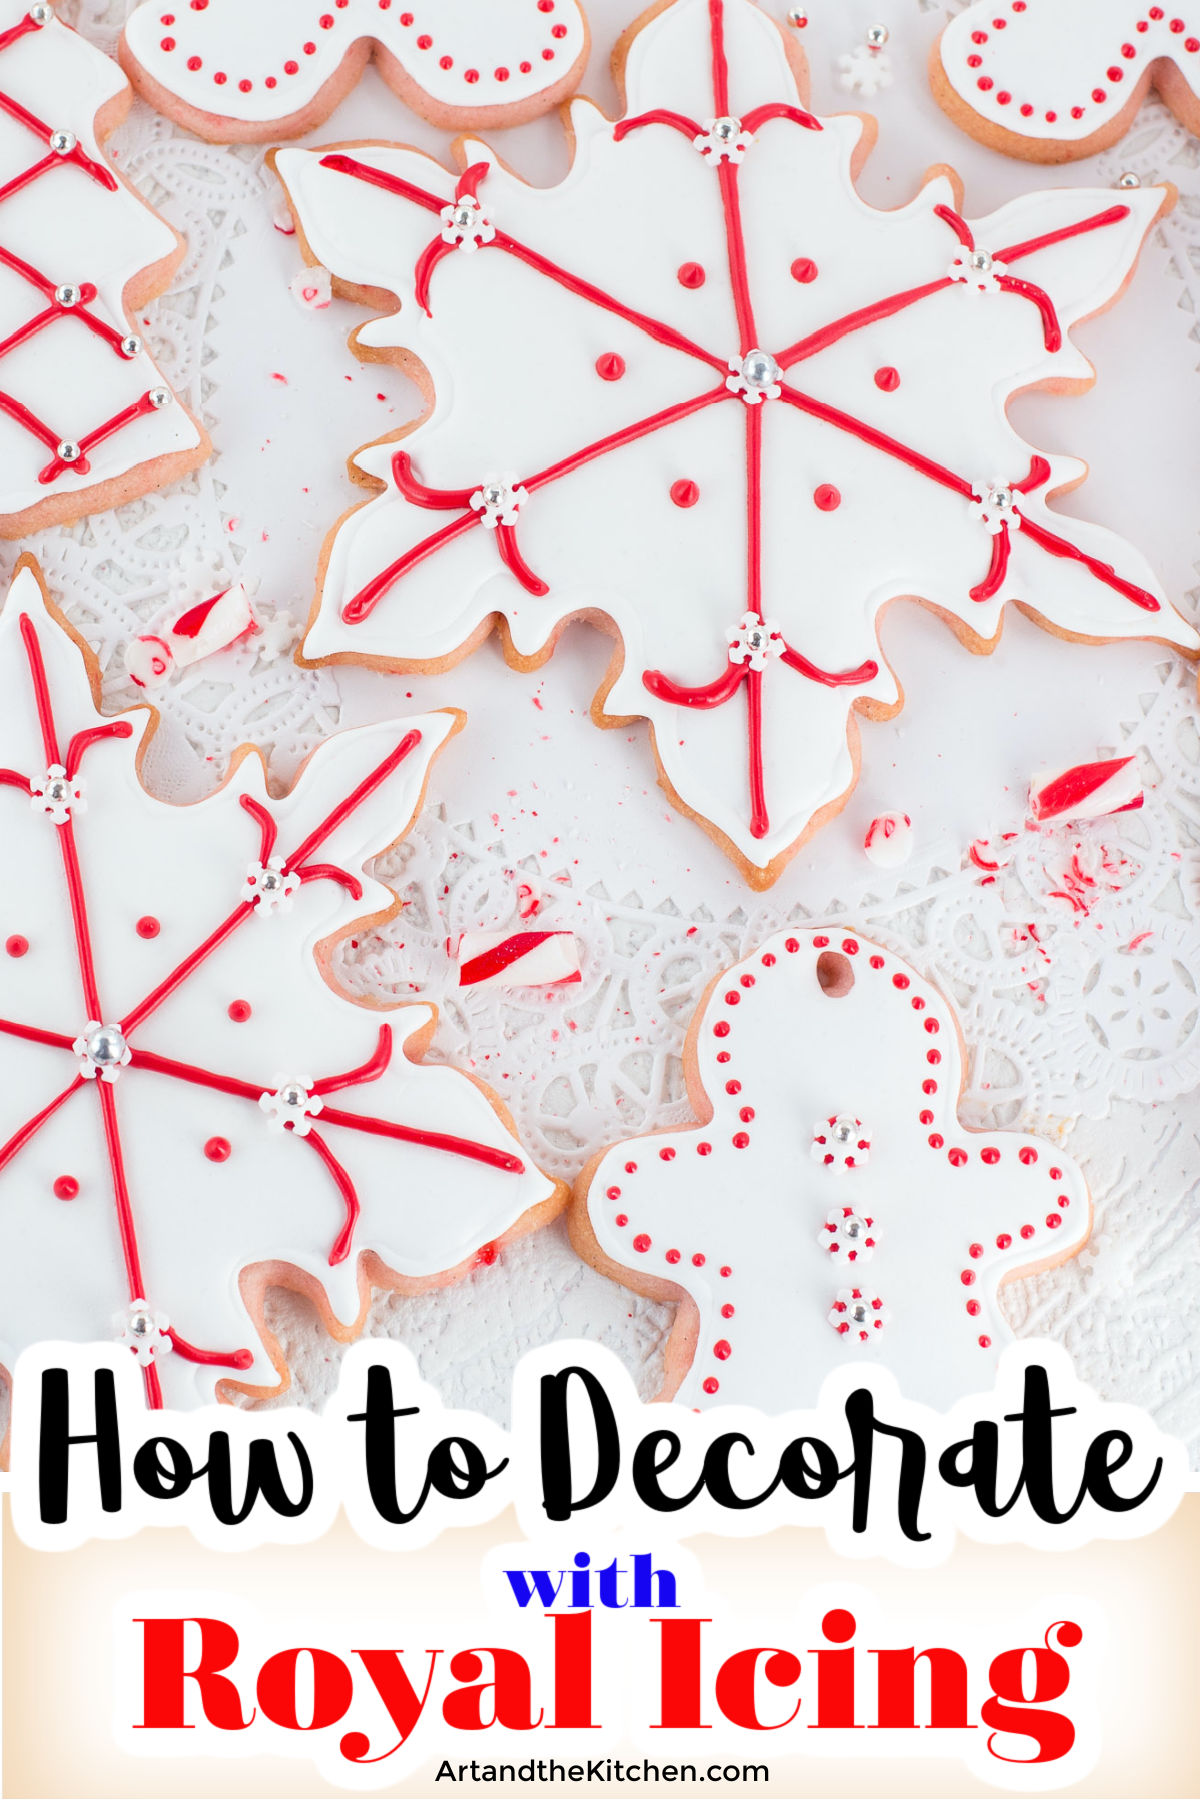 How to Decorate Cookies with Royal Icing, here are some easy to follow step by step instructions. via @artandthekitch